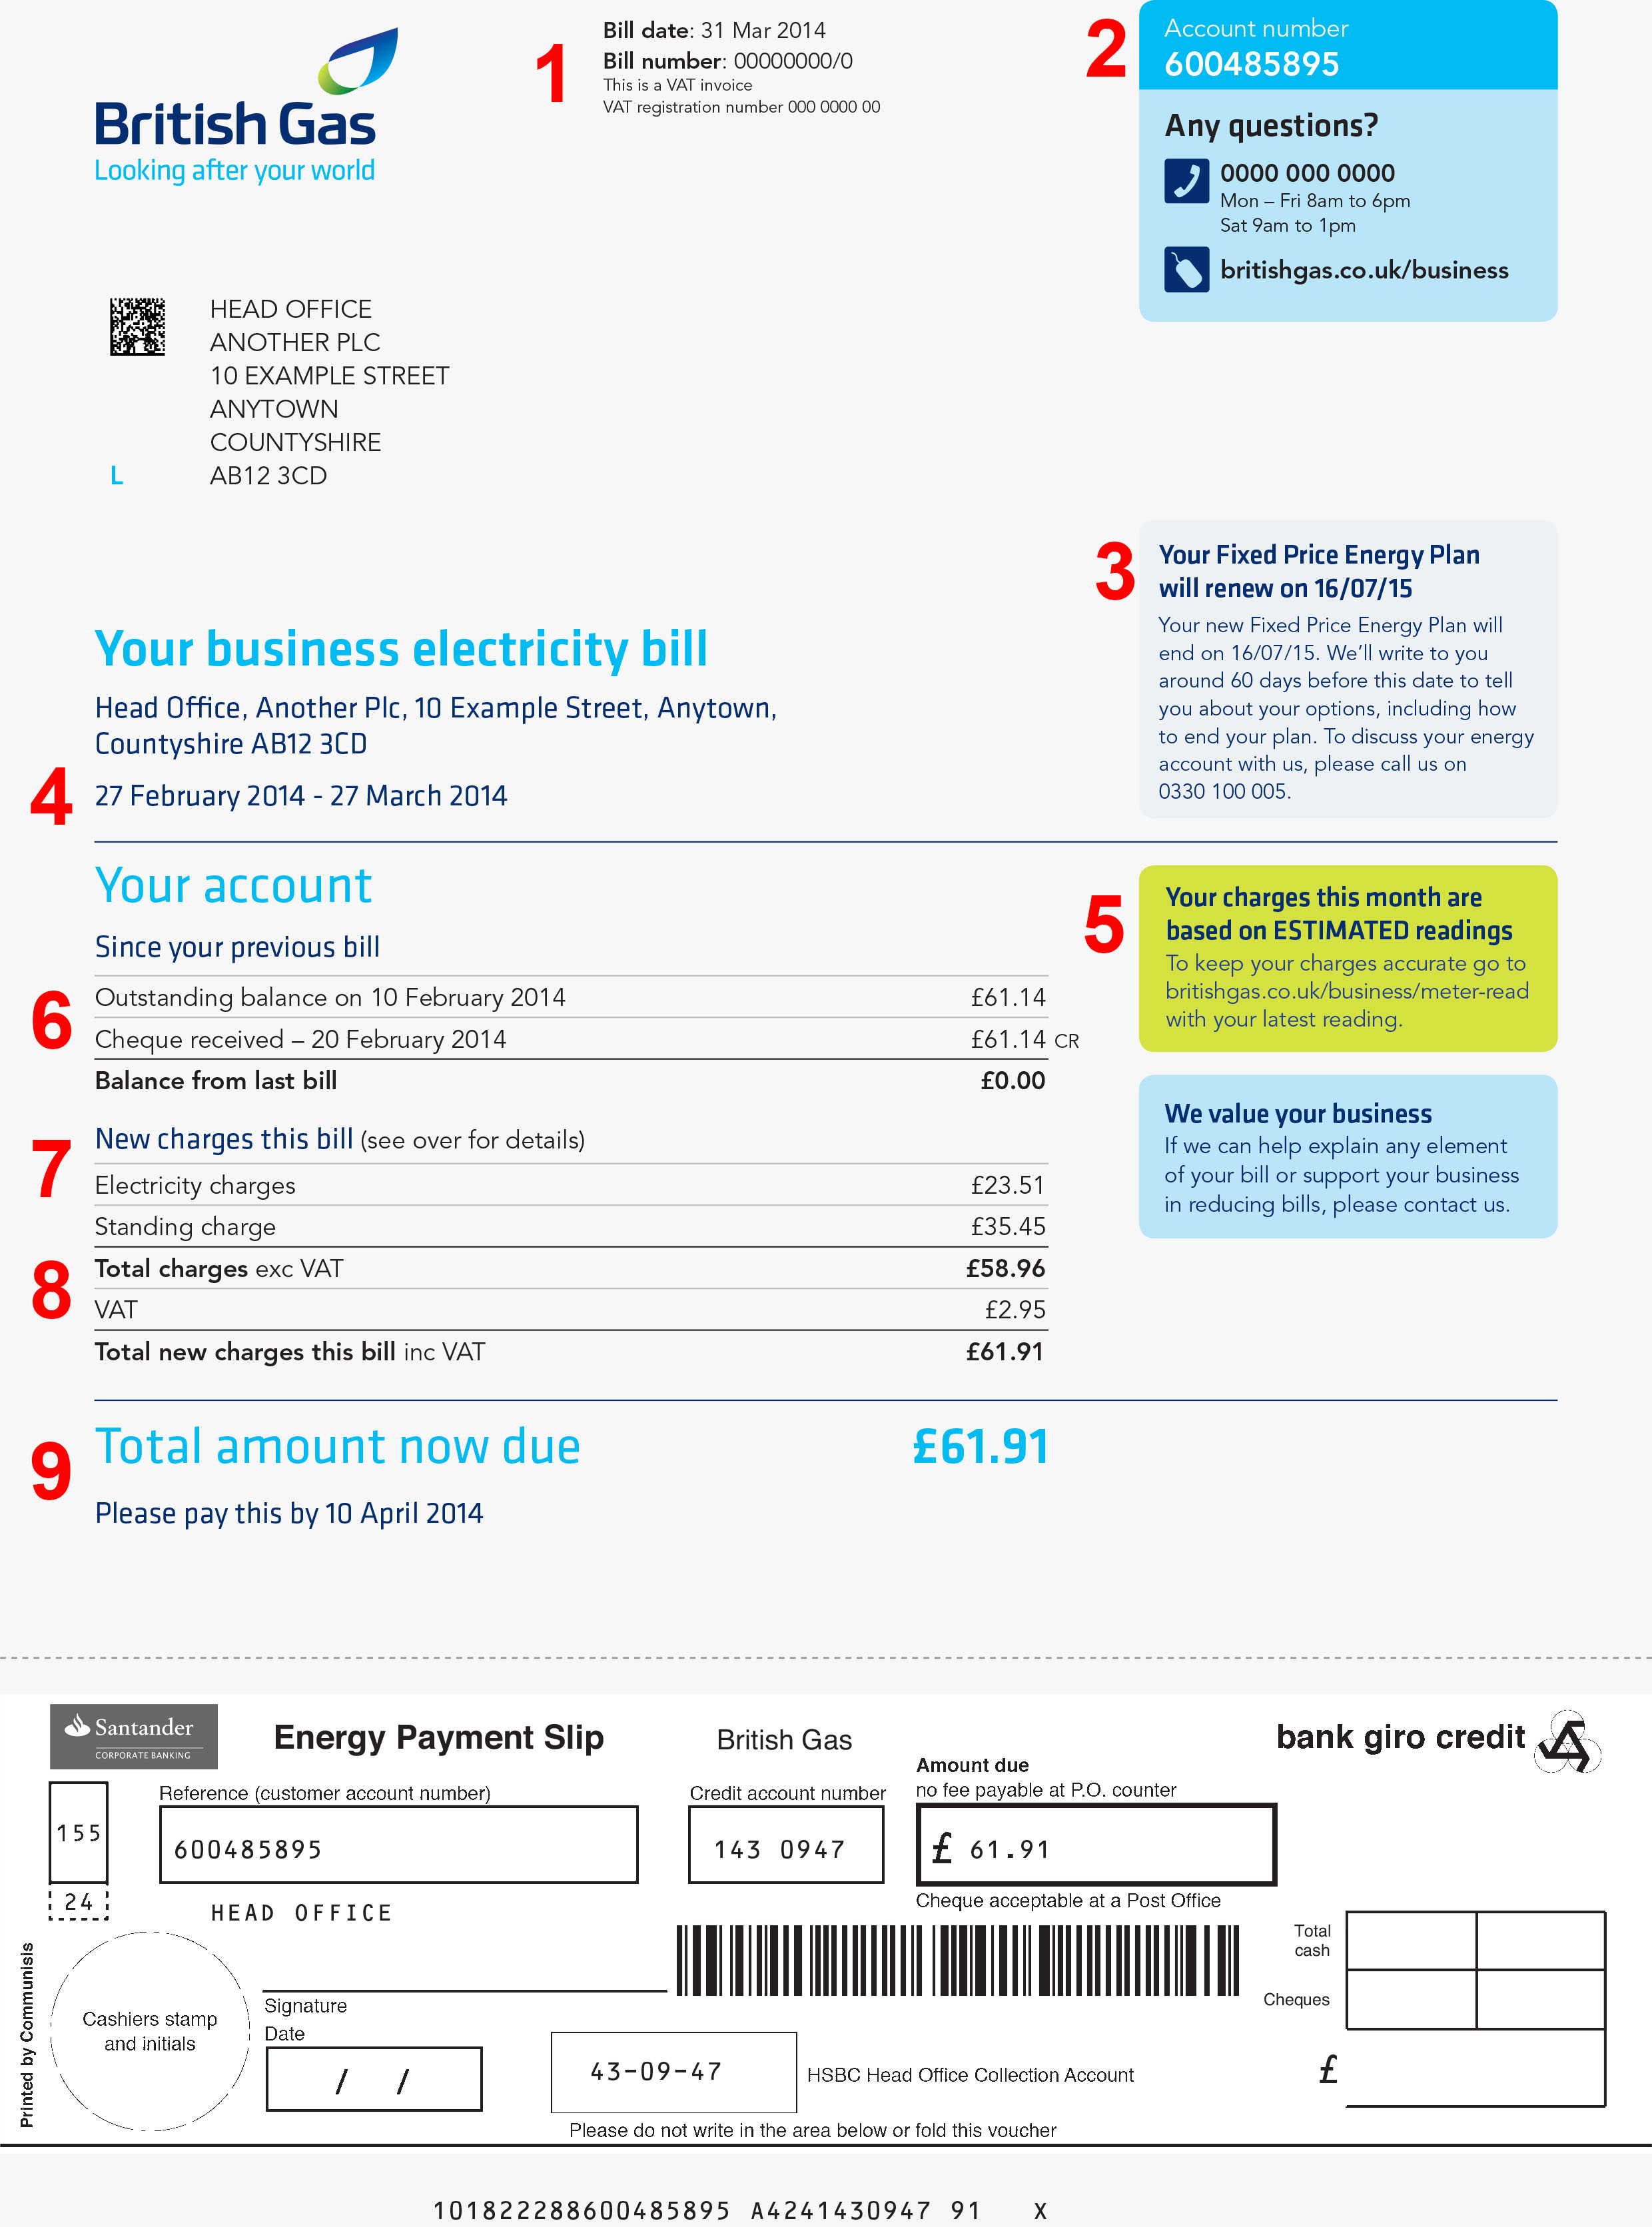 British Gas Business Energy Bill Page 2